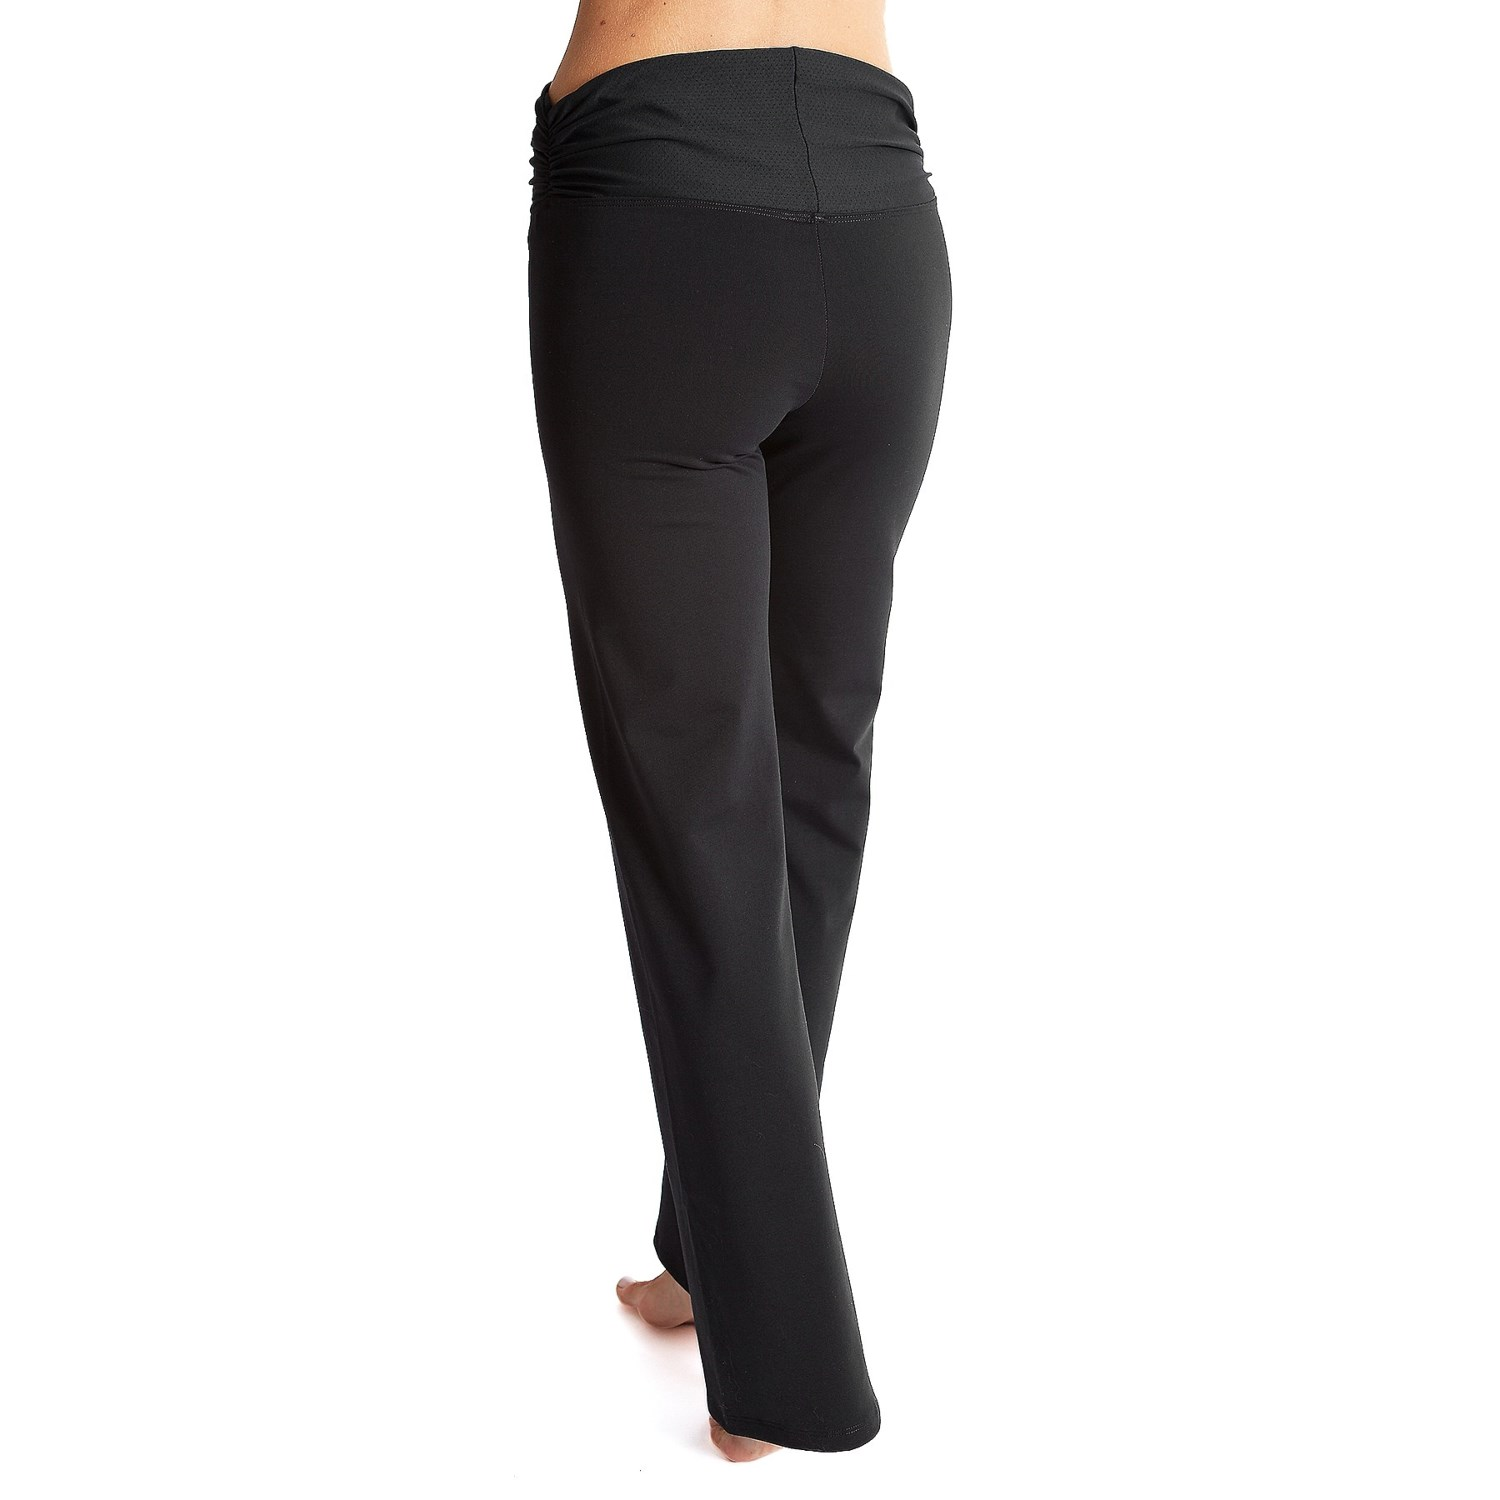 Be Up Karma Yoga Pants (For Women) 8354U